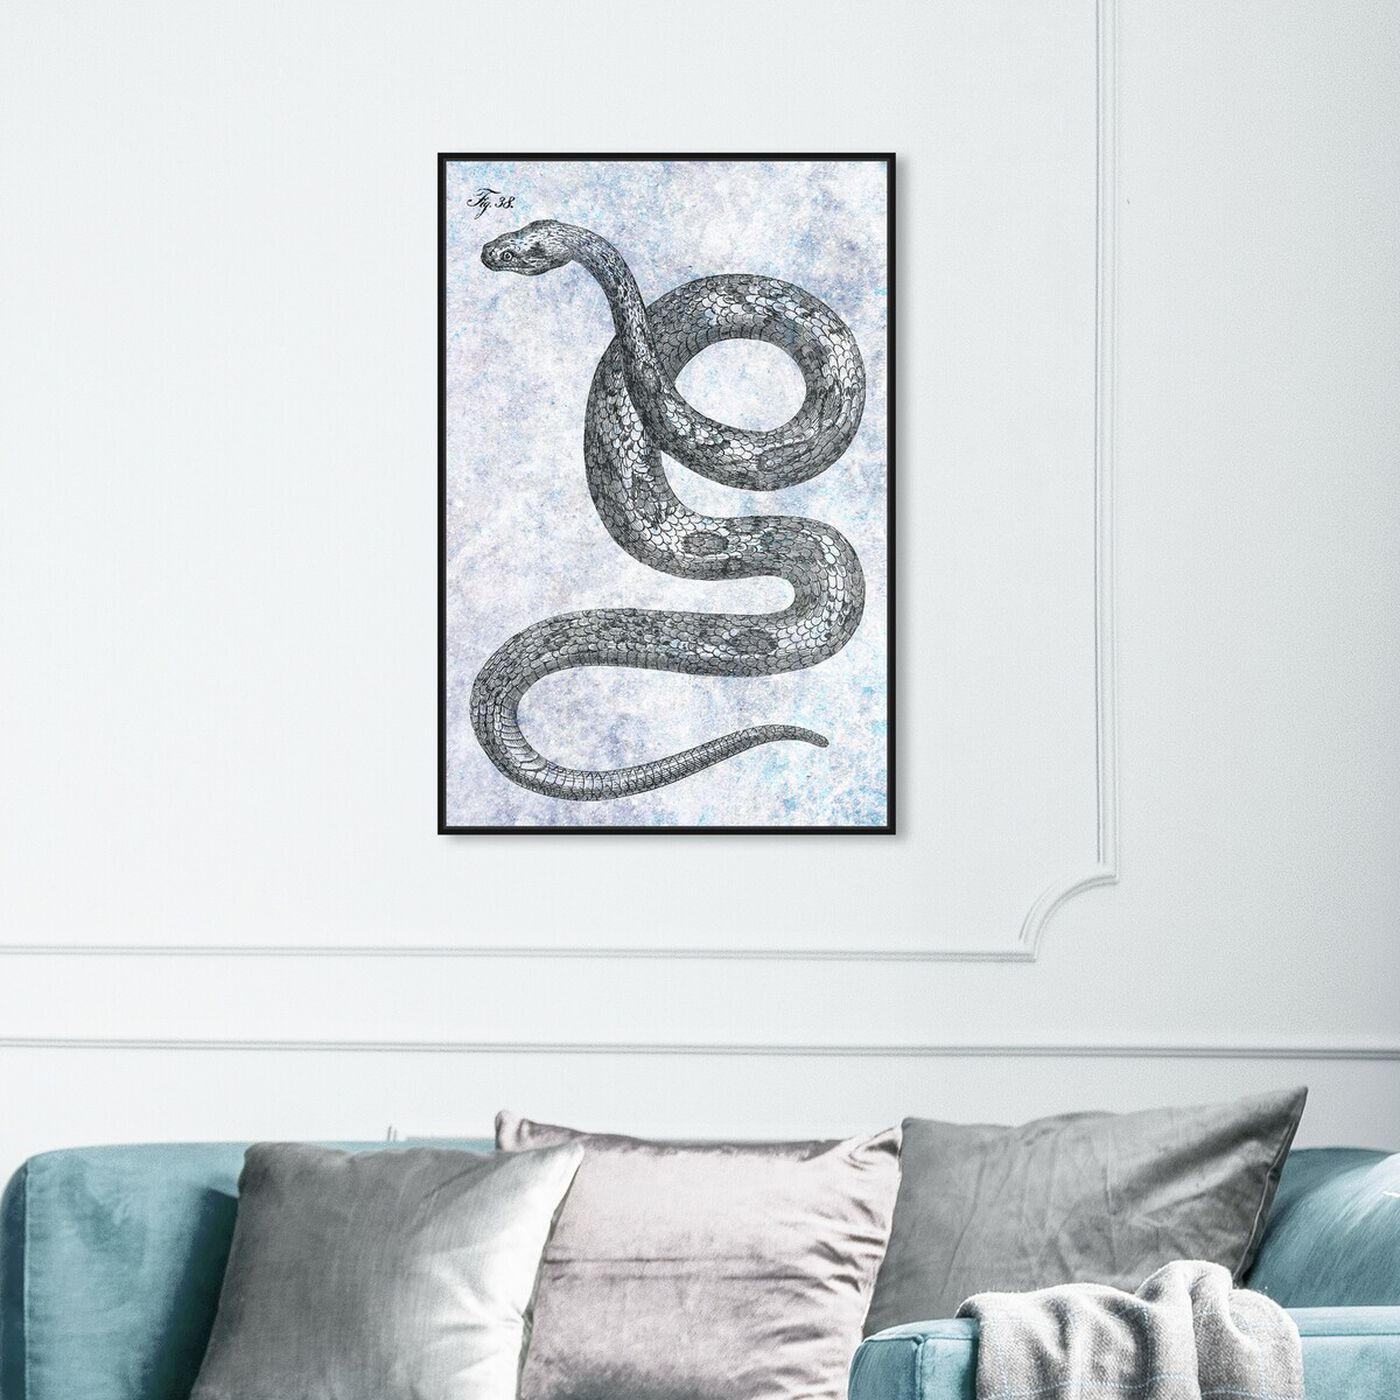 Hanging view of Single Snake featuring animals and zoo and wild animals art.